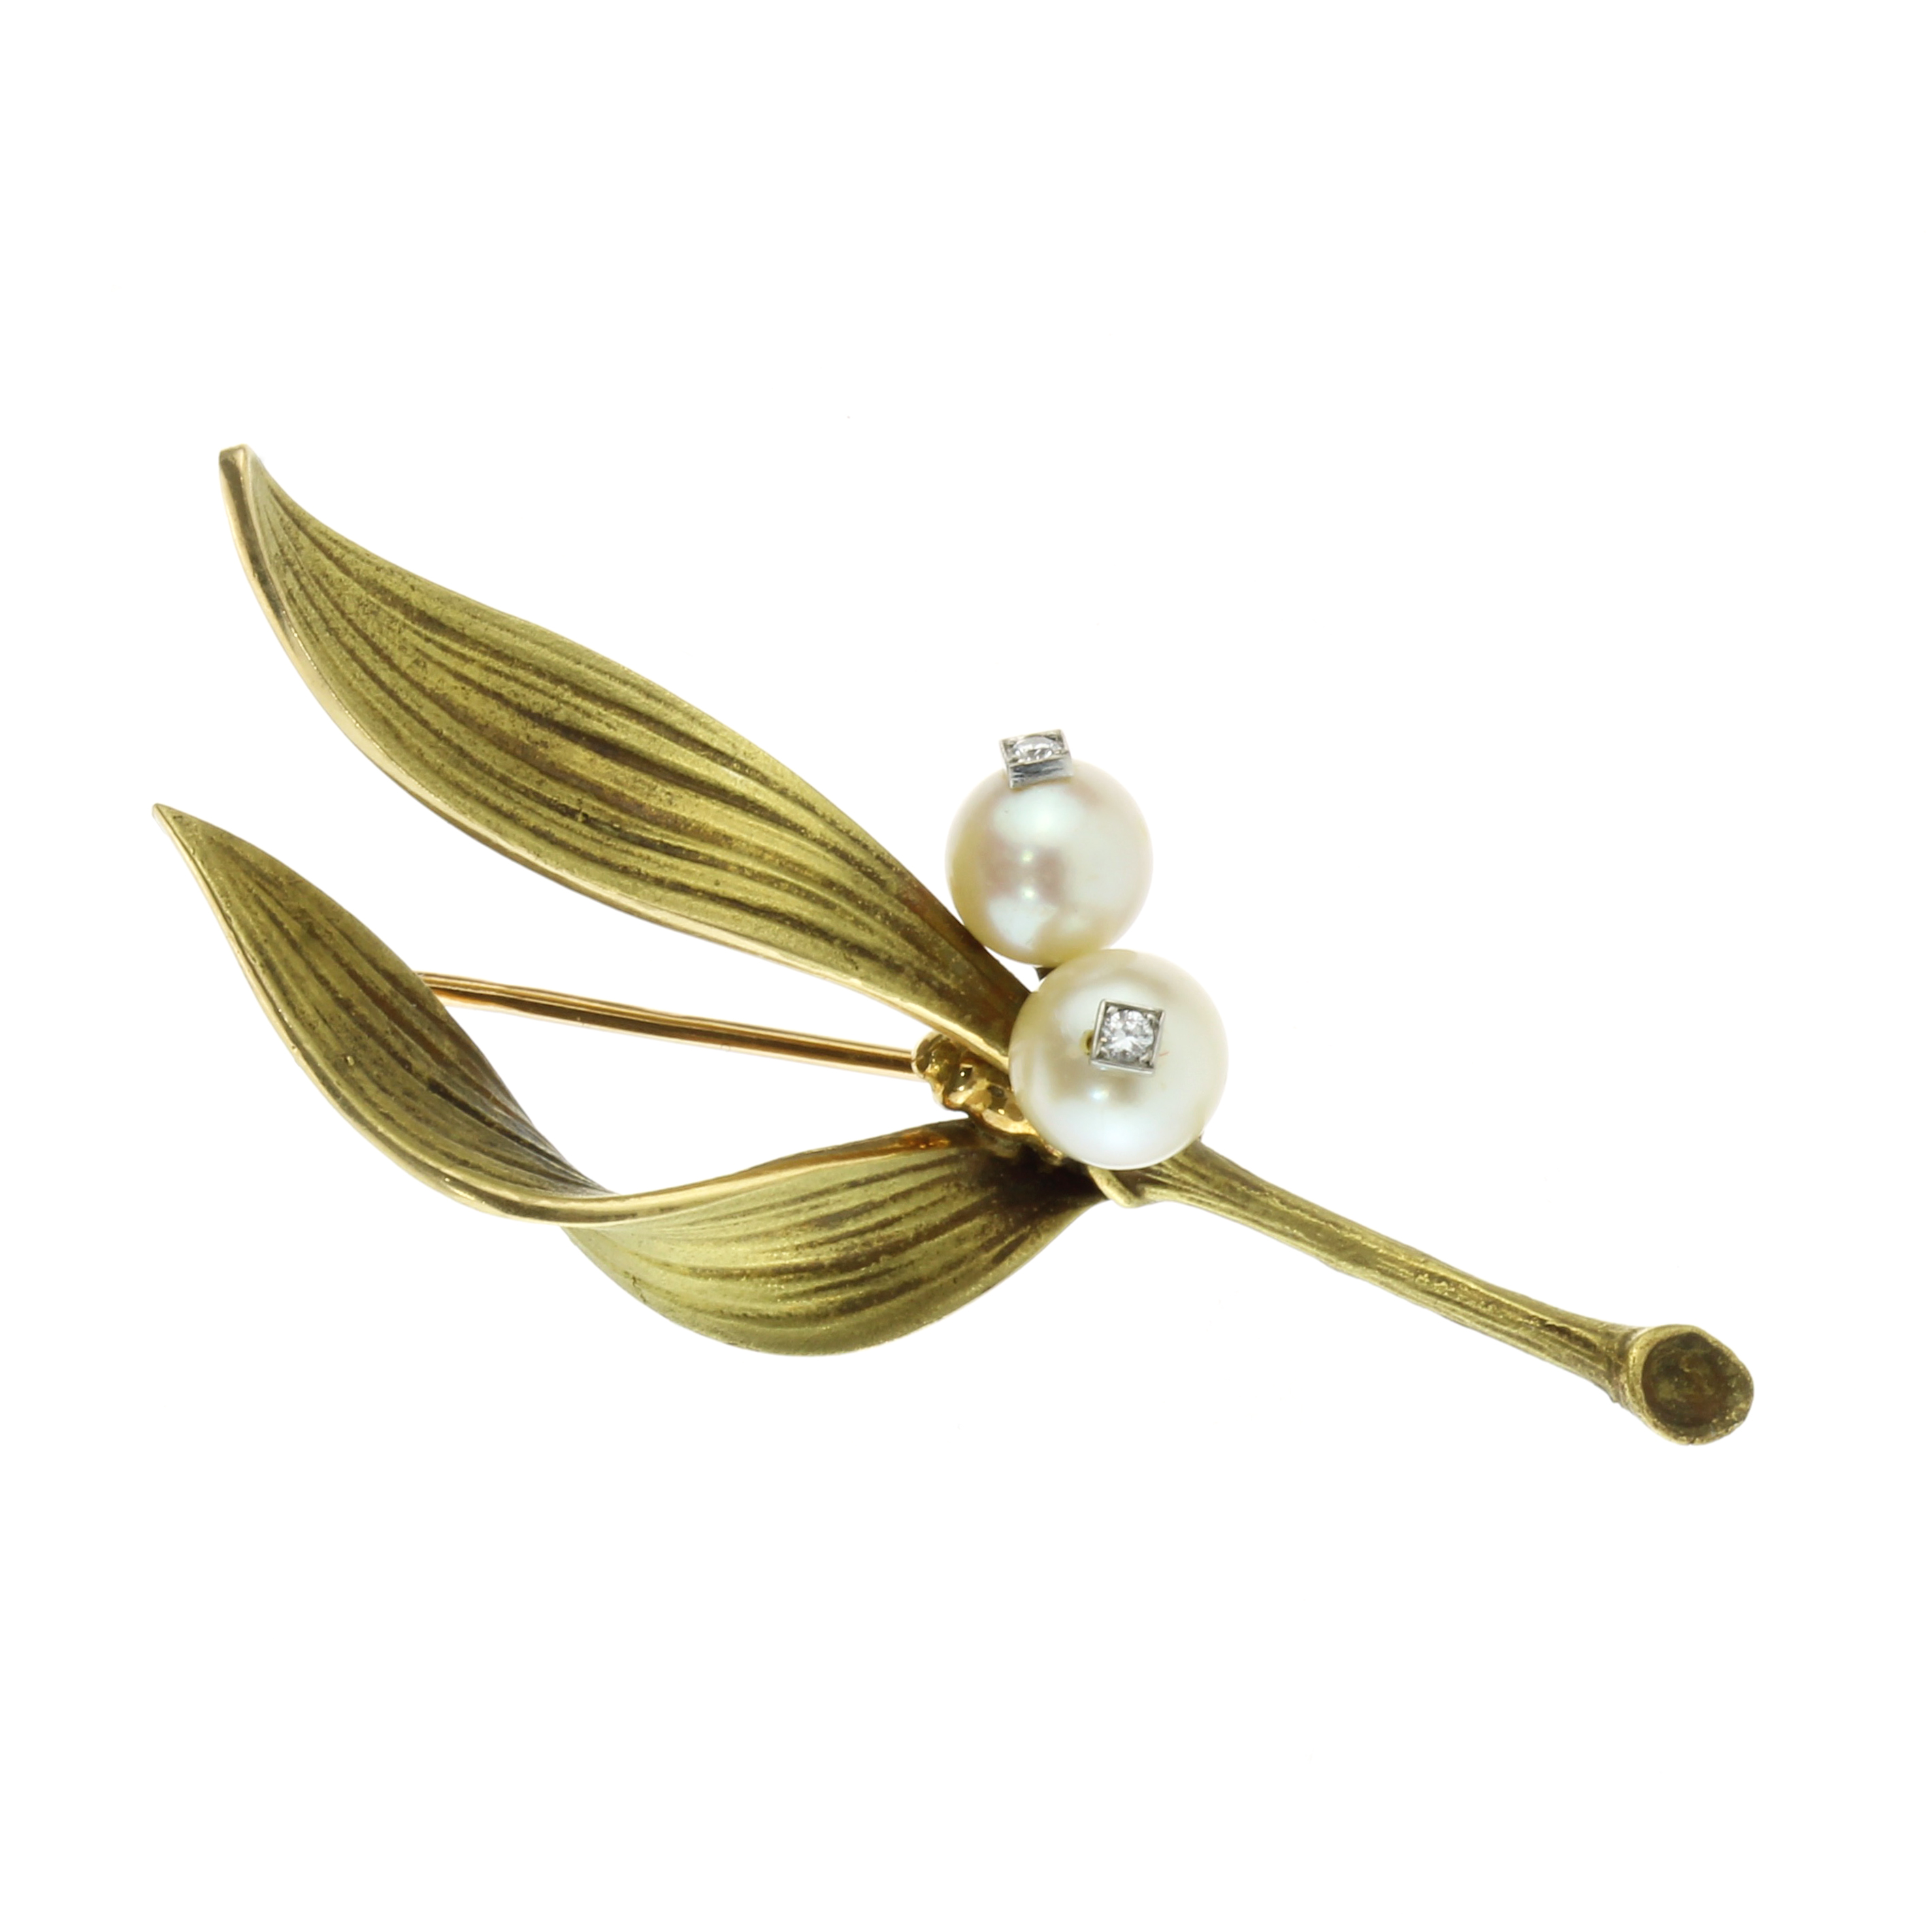 Los 59 - A PEARL AND DIAMOND BROOCH, PIERRE STERLÉ, CIRCA 1950 designed as a leaf shoot, naturalistically